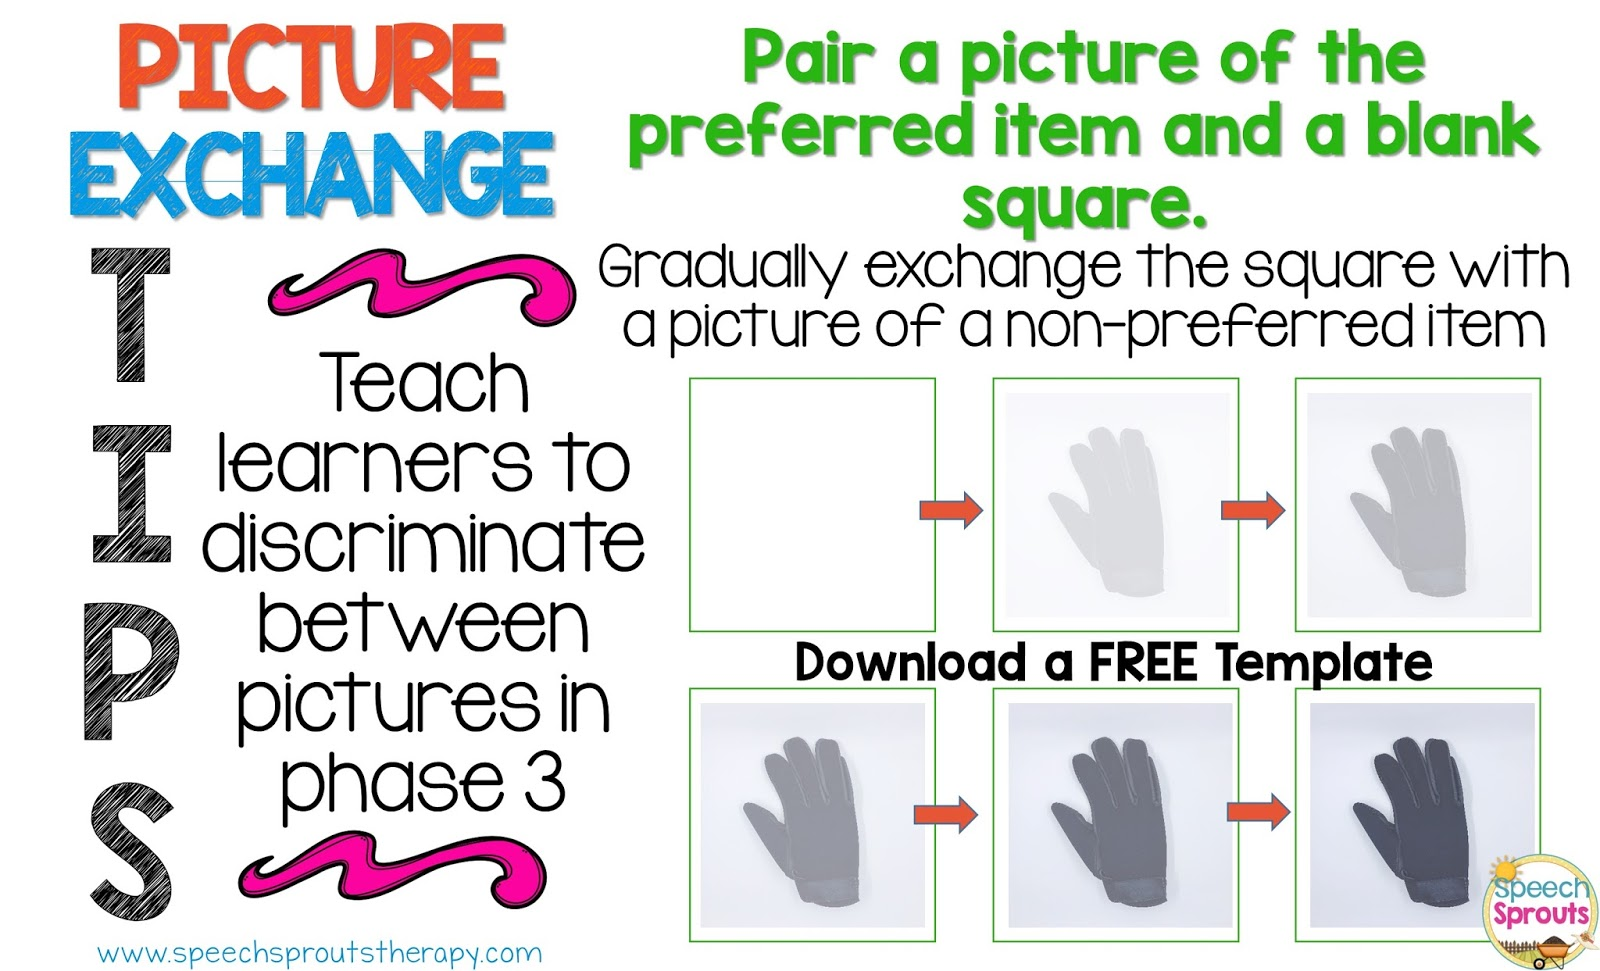 Speech Sprouts Autism Supports Free Templates To Easily Create